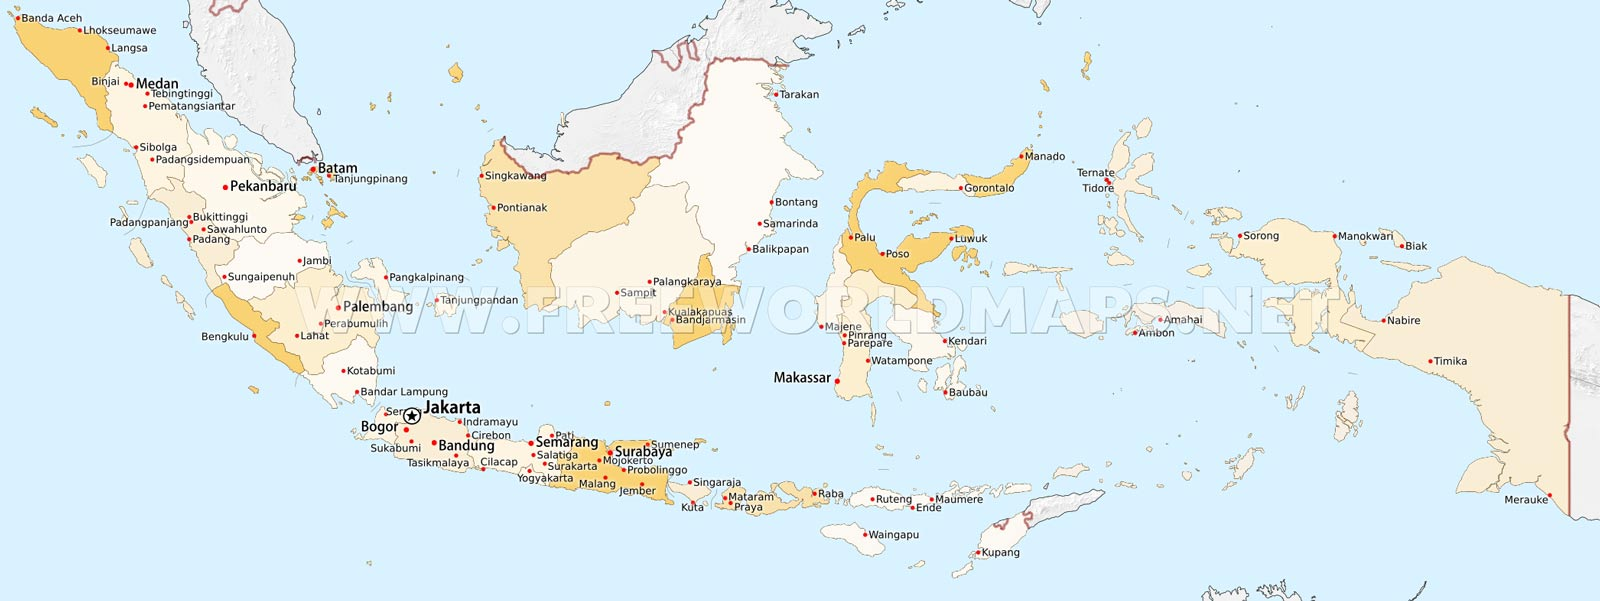 World Map Around Indonesia. Indonesia physical map cities Maps